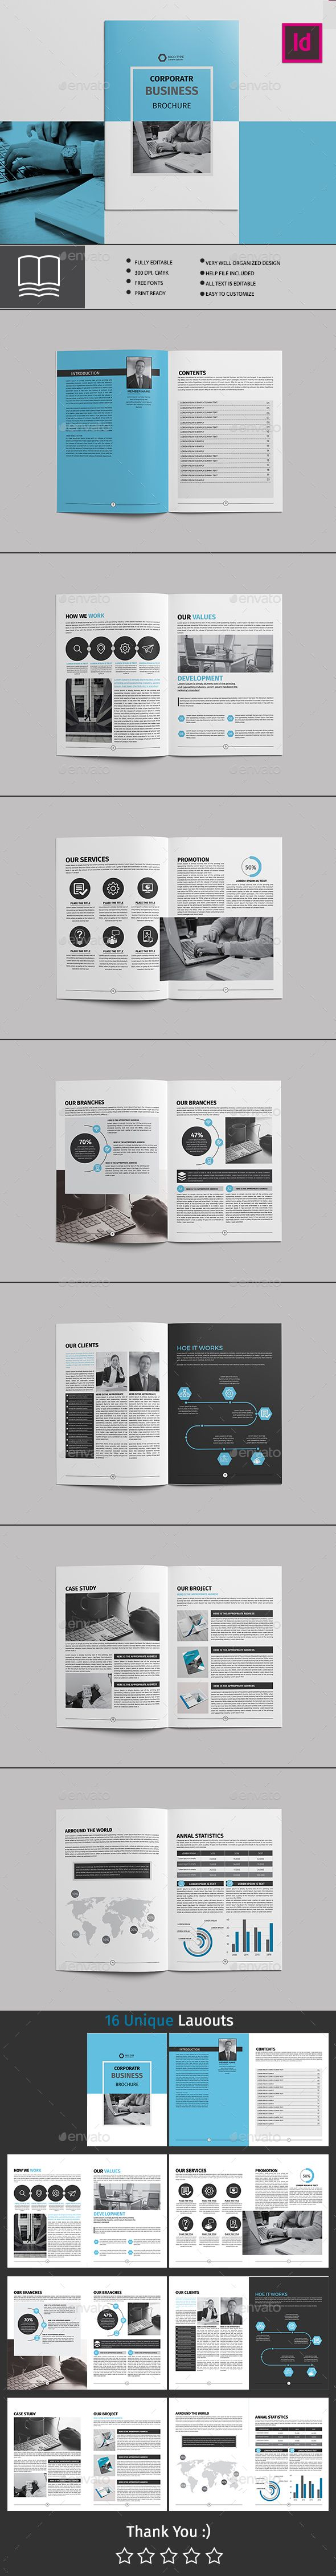 Best Brochures Template Images On   Brochure